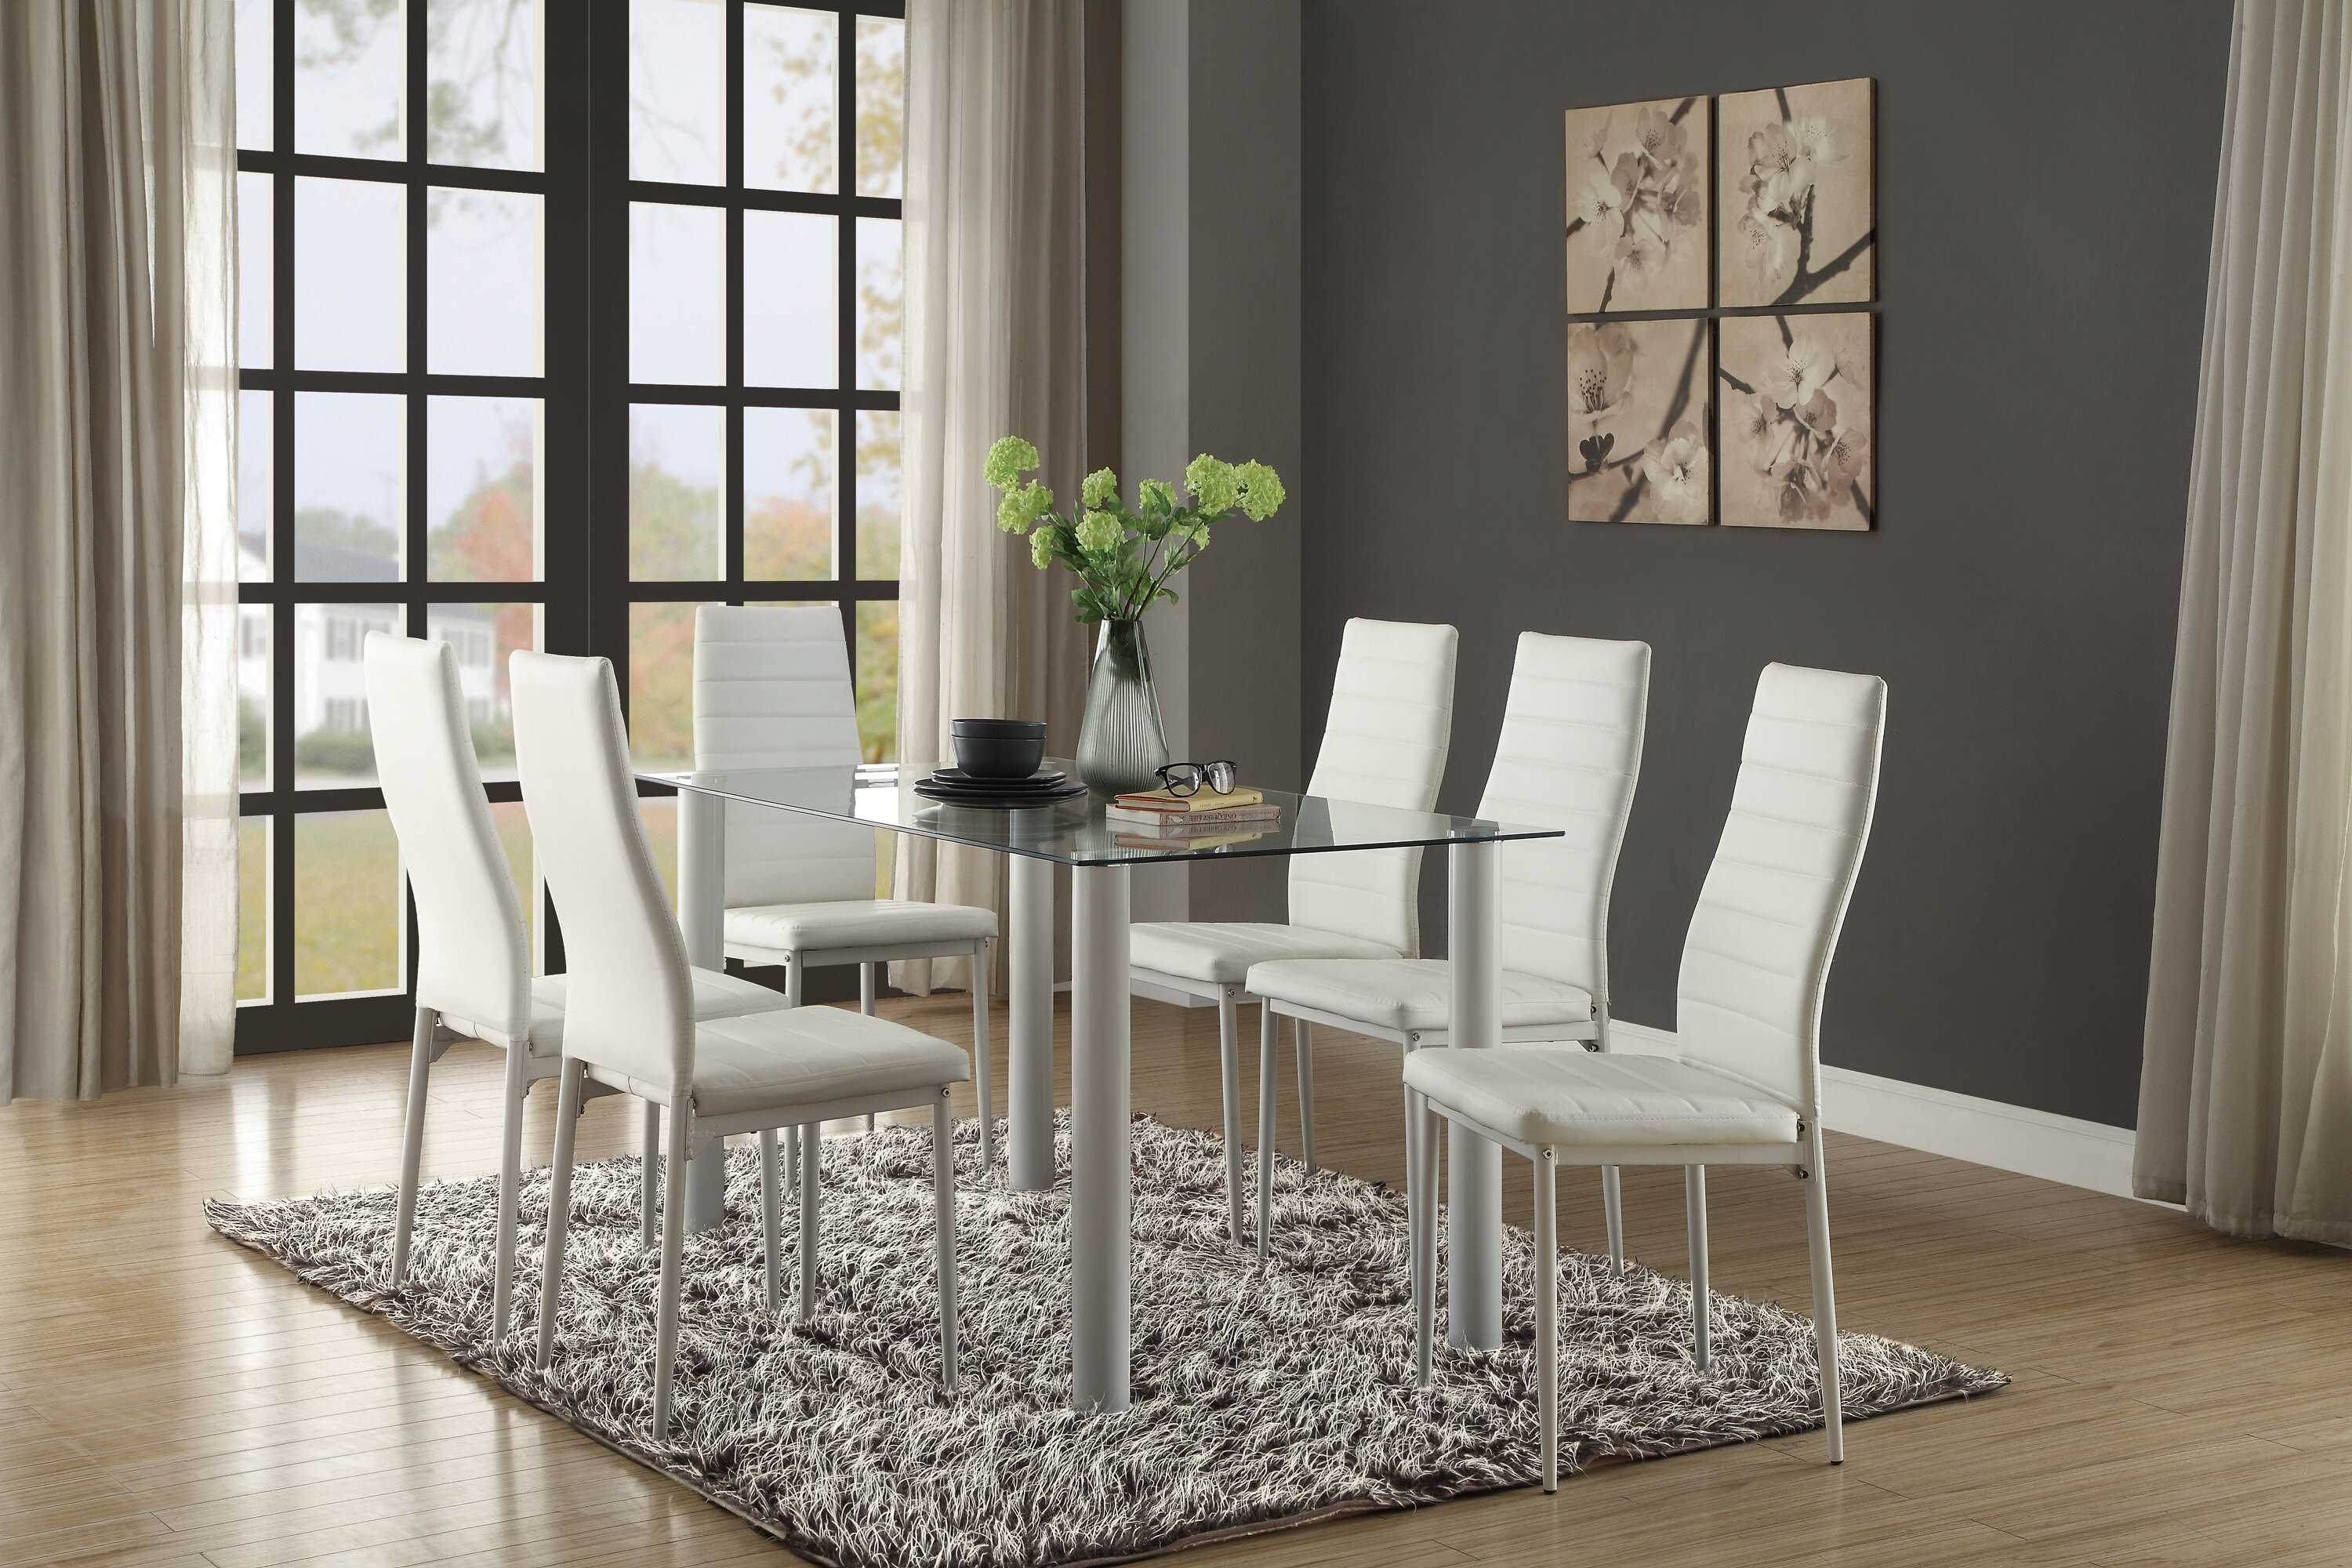 Modern Dining Chairs Allmodern - Design-dining-room